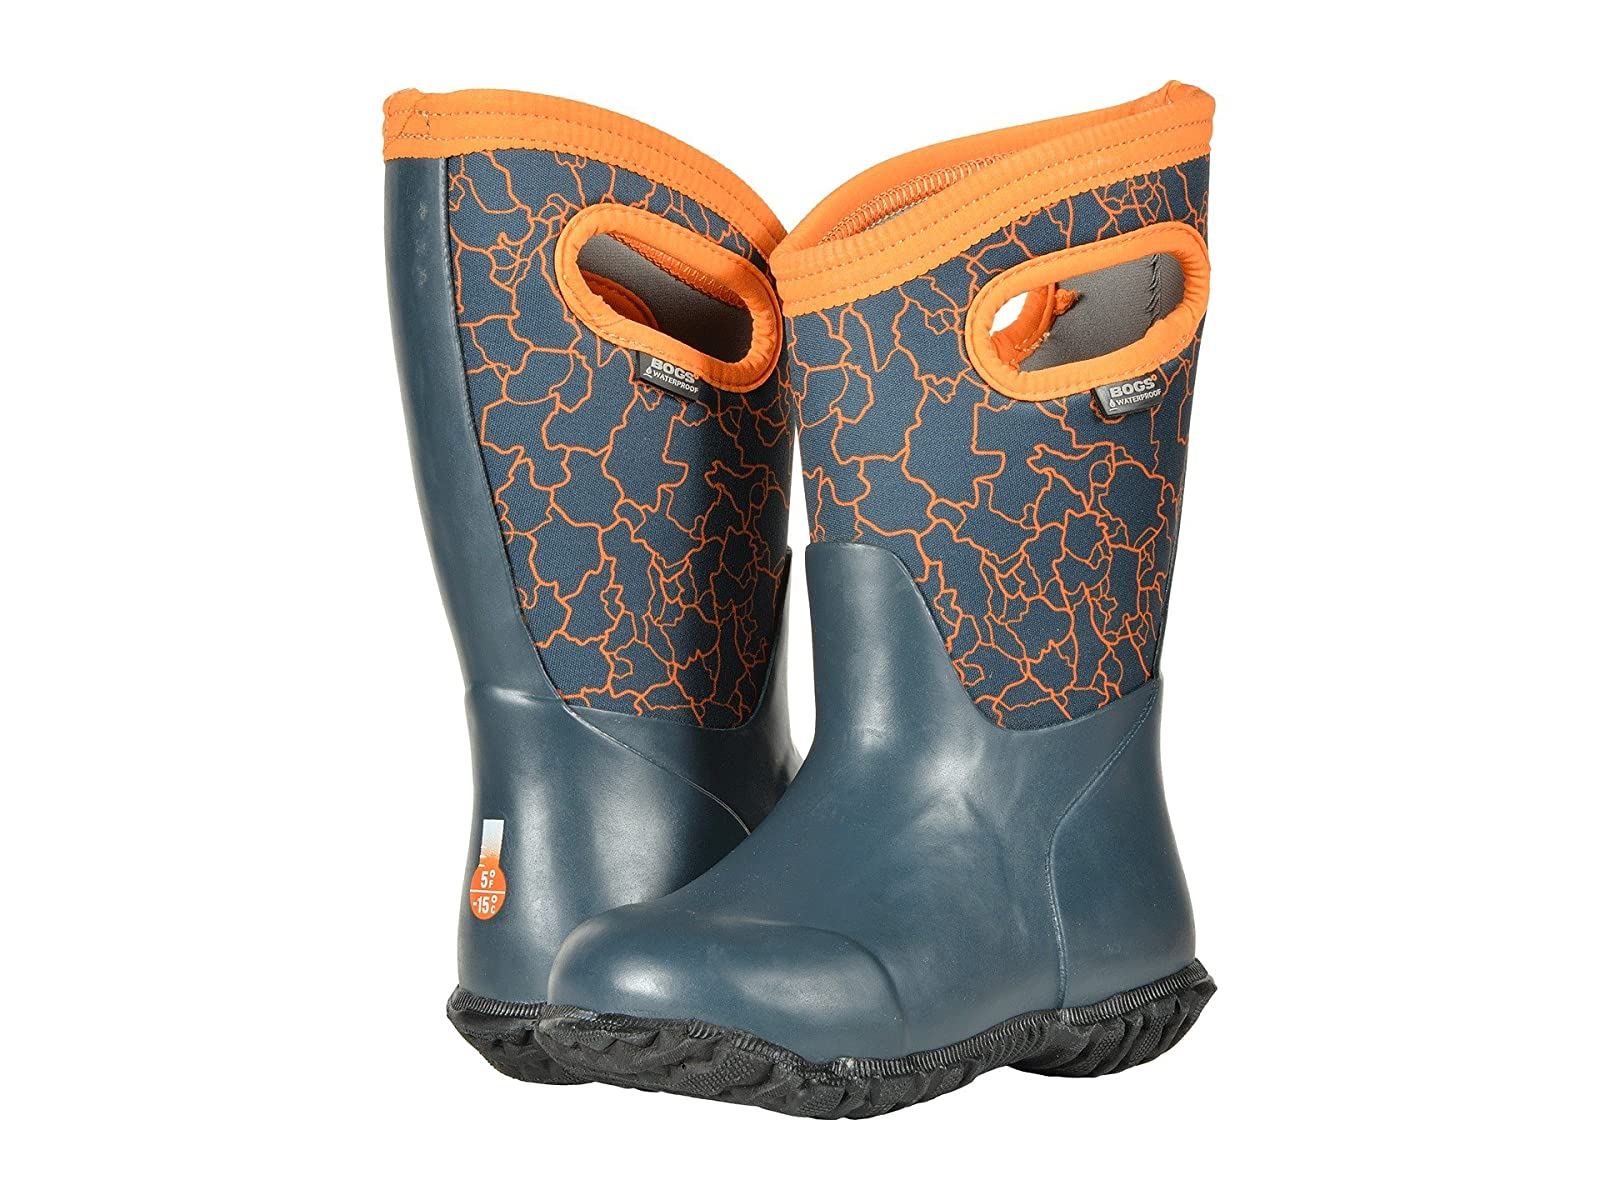 Bogs Kids Durham Crackle (Toddler/Little Kid/Big Kid)Cheap and distinctive eye-catching shoes